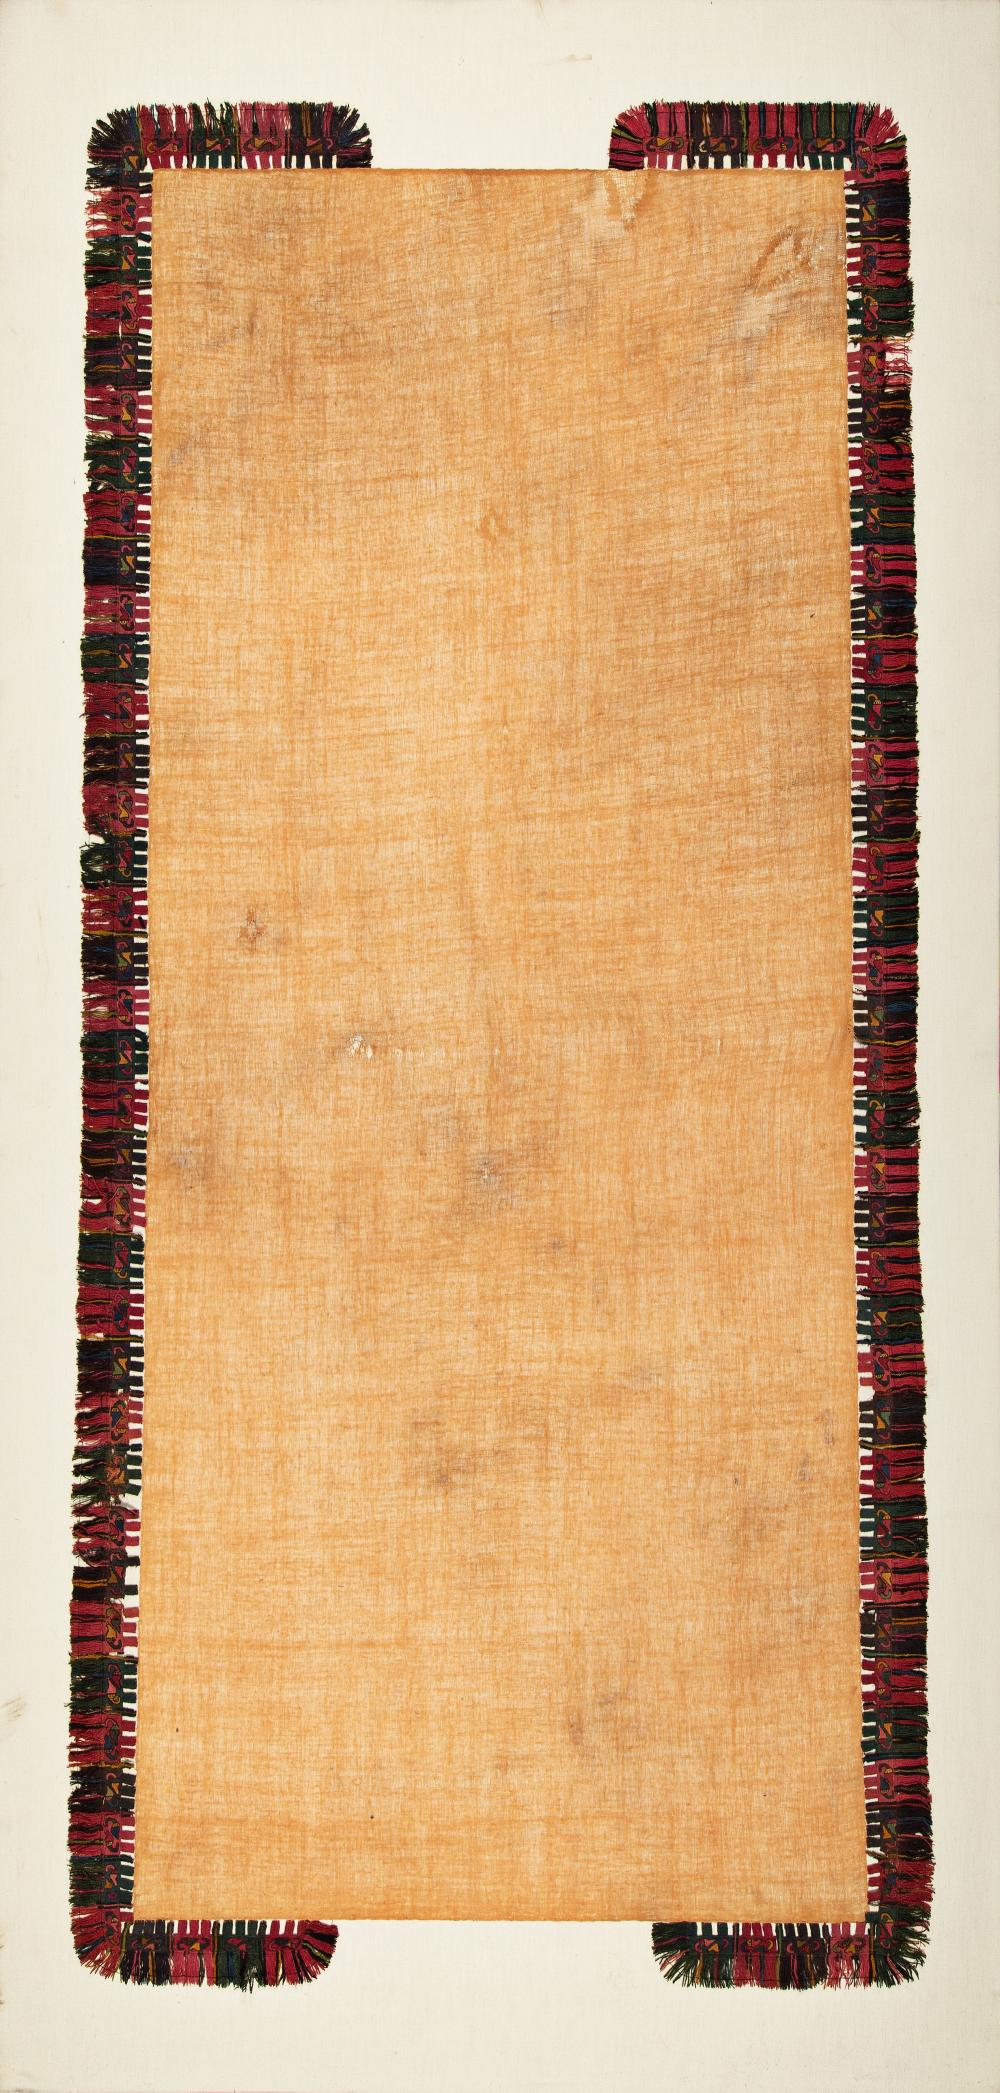 Ceremonial scarf with decorative border (chili peppers)